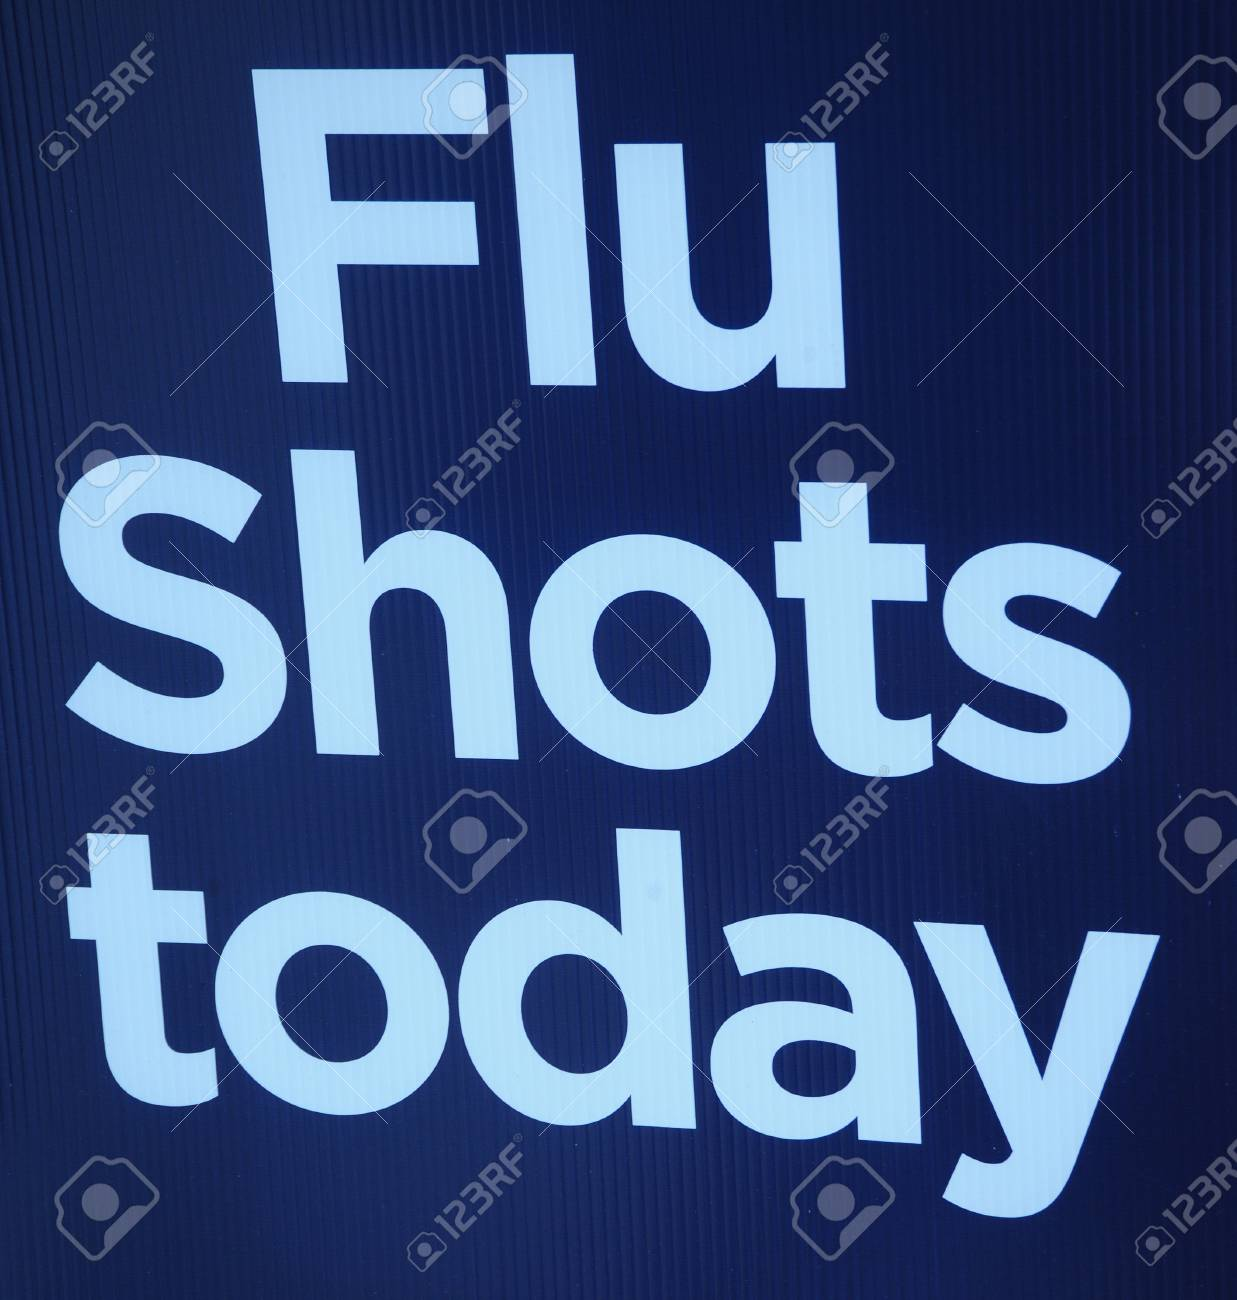 Flu shots today sign on display outdoors. Stock Photo - 8632730